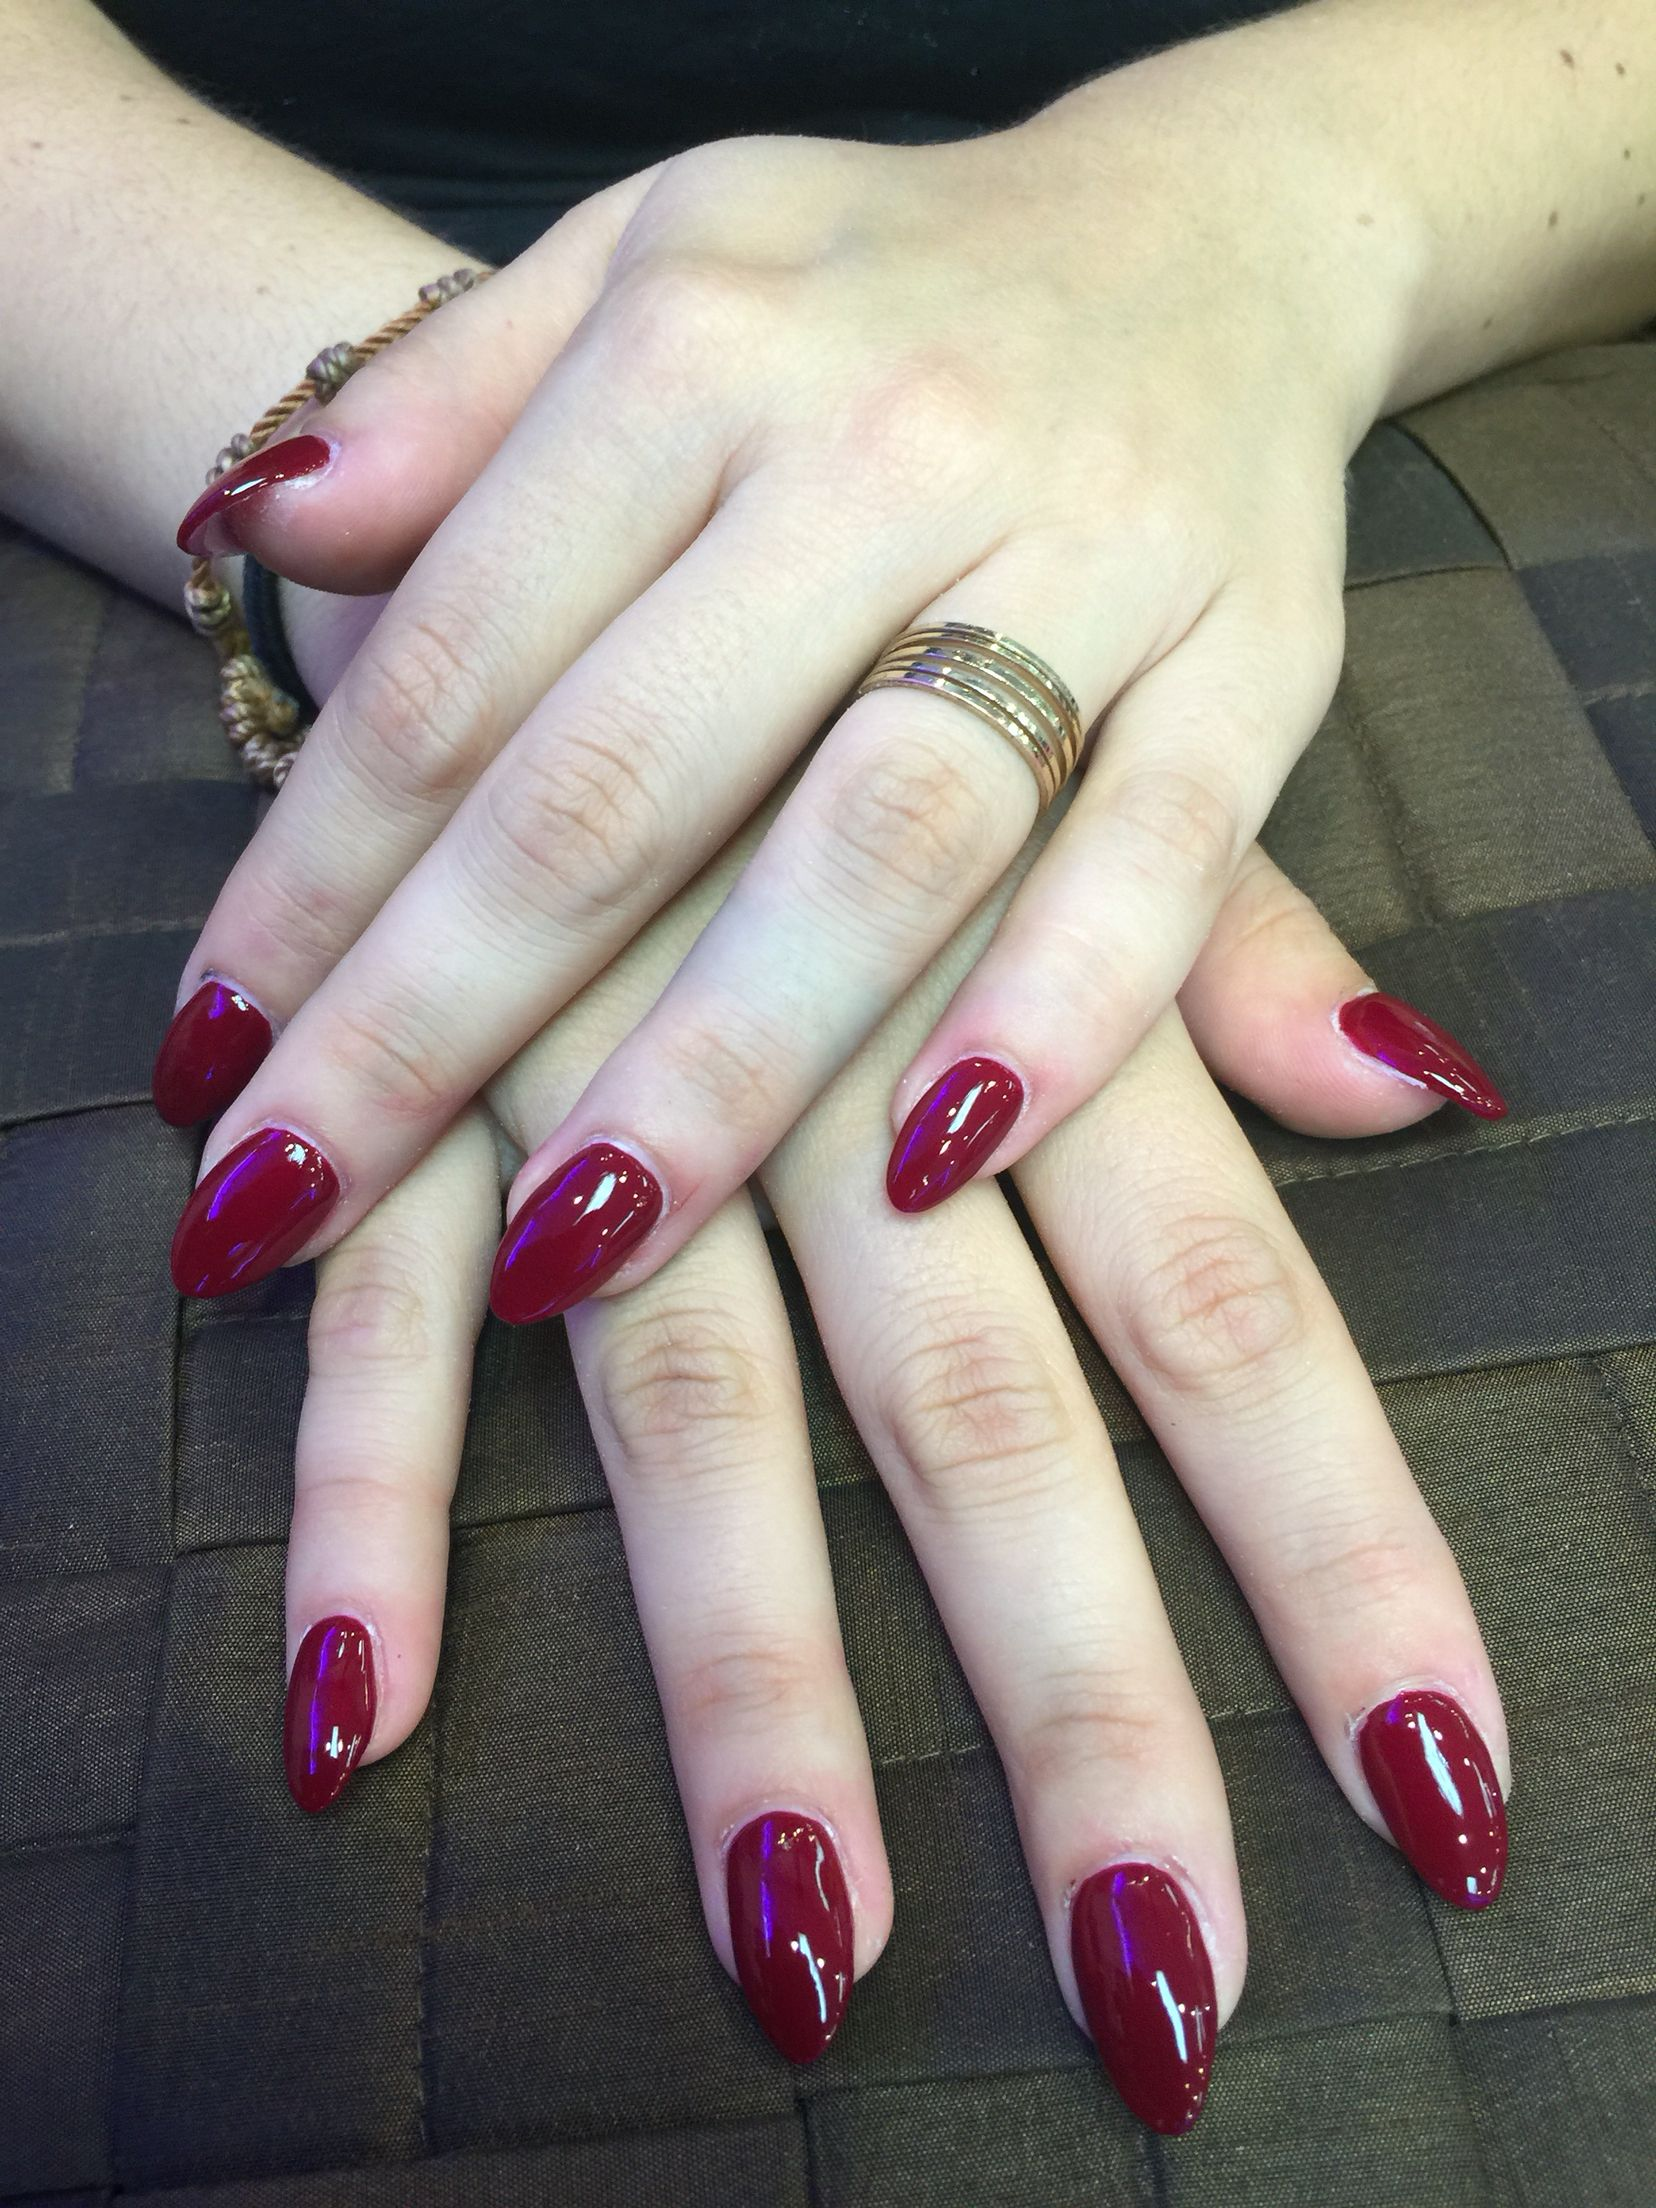 Almond nail shape with dark red | In love | Pinterest | Almond nails ...